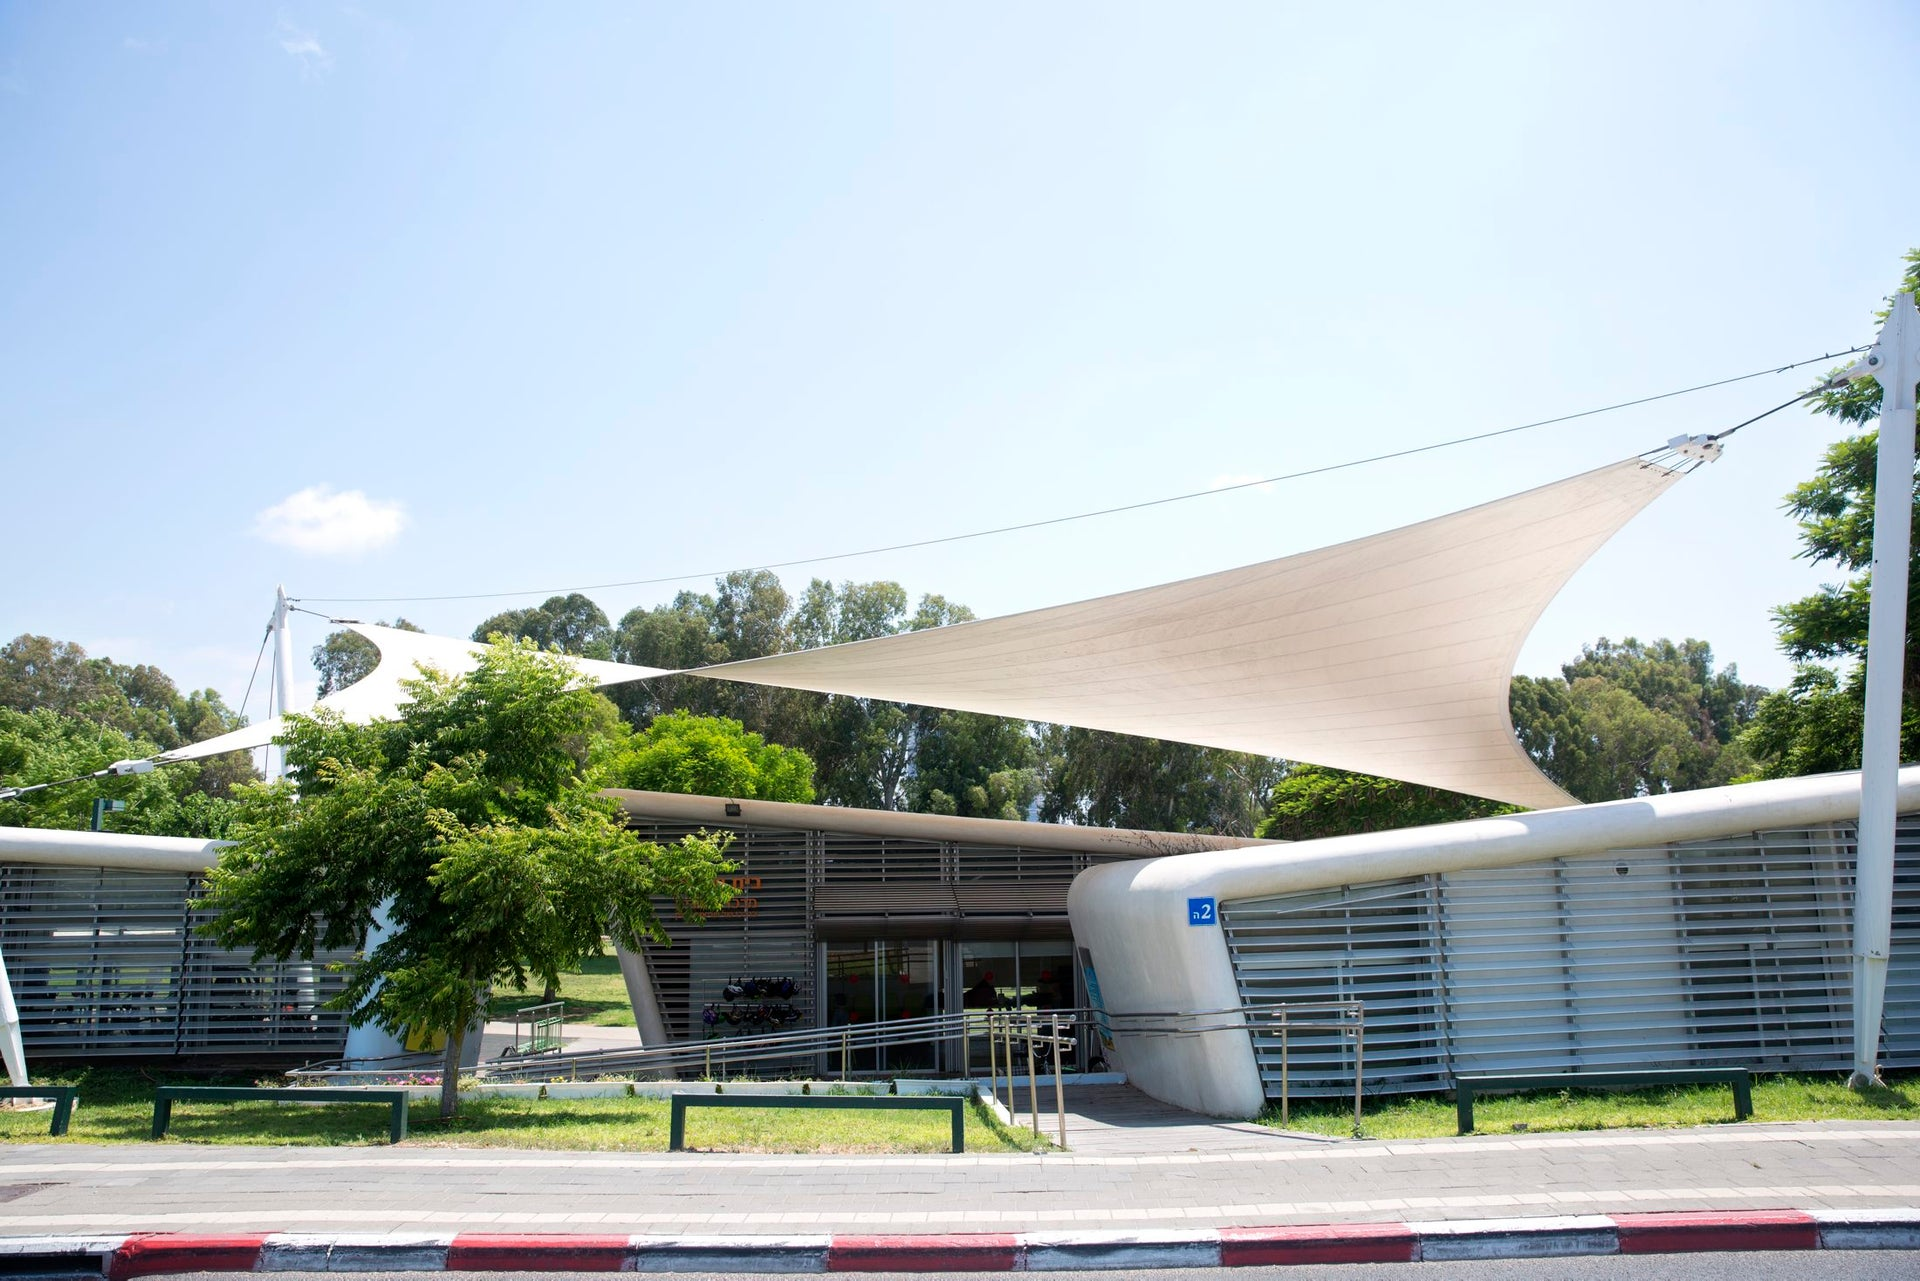 The Etgarim Center in Tel Aviv's Yarkon Park. Only built in 2013, the NTA wants to demolish it to make way for the Green Line serving north Tel Aviv.